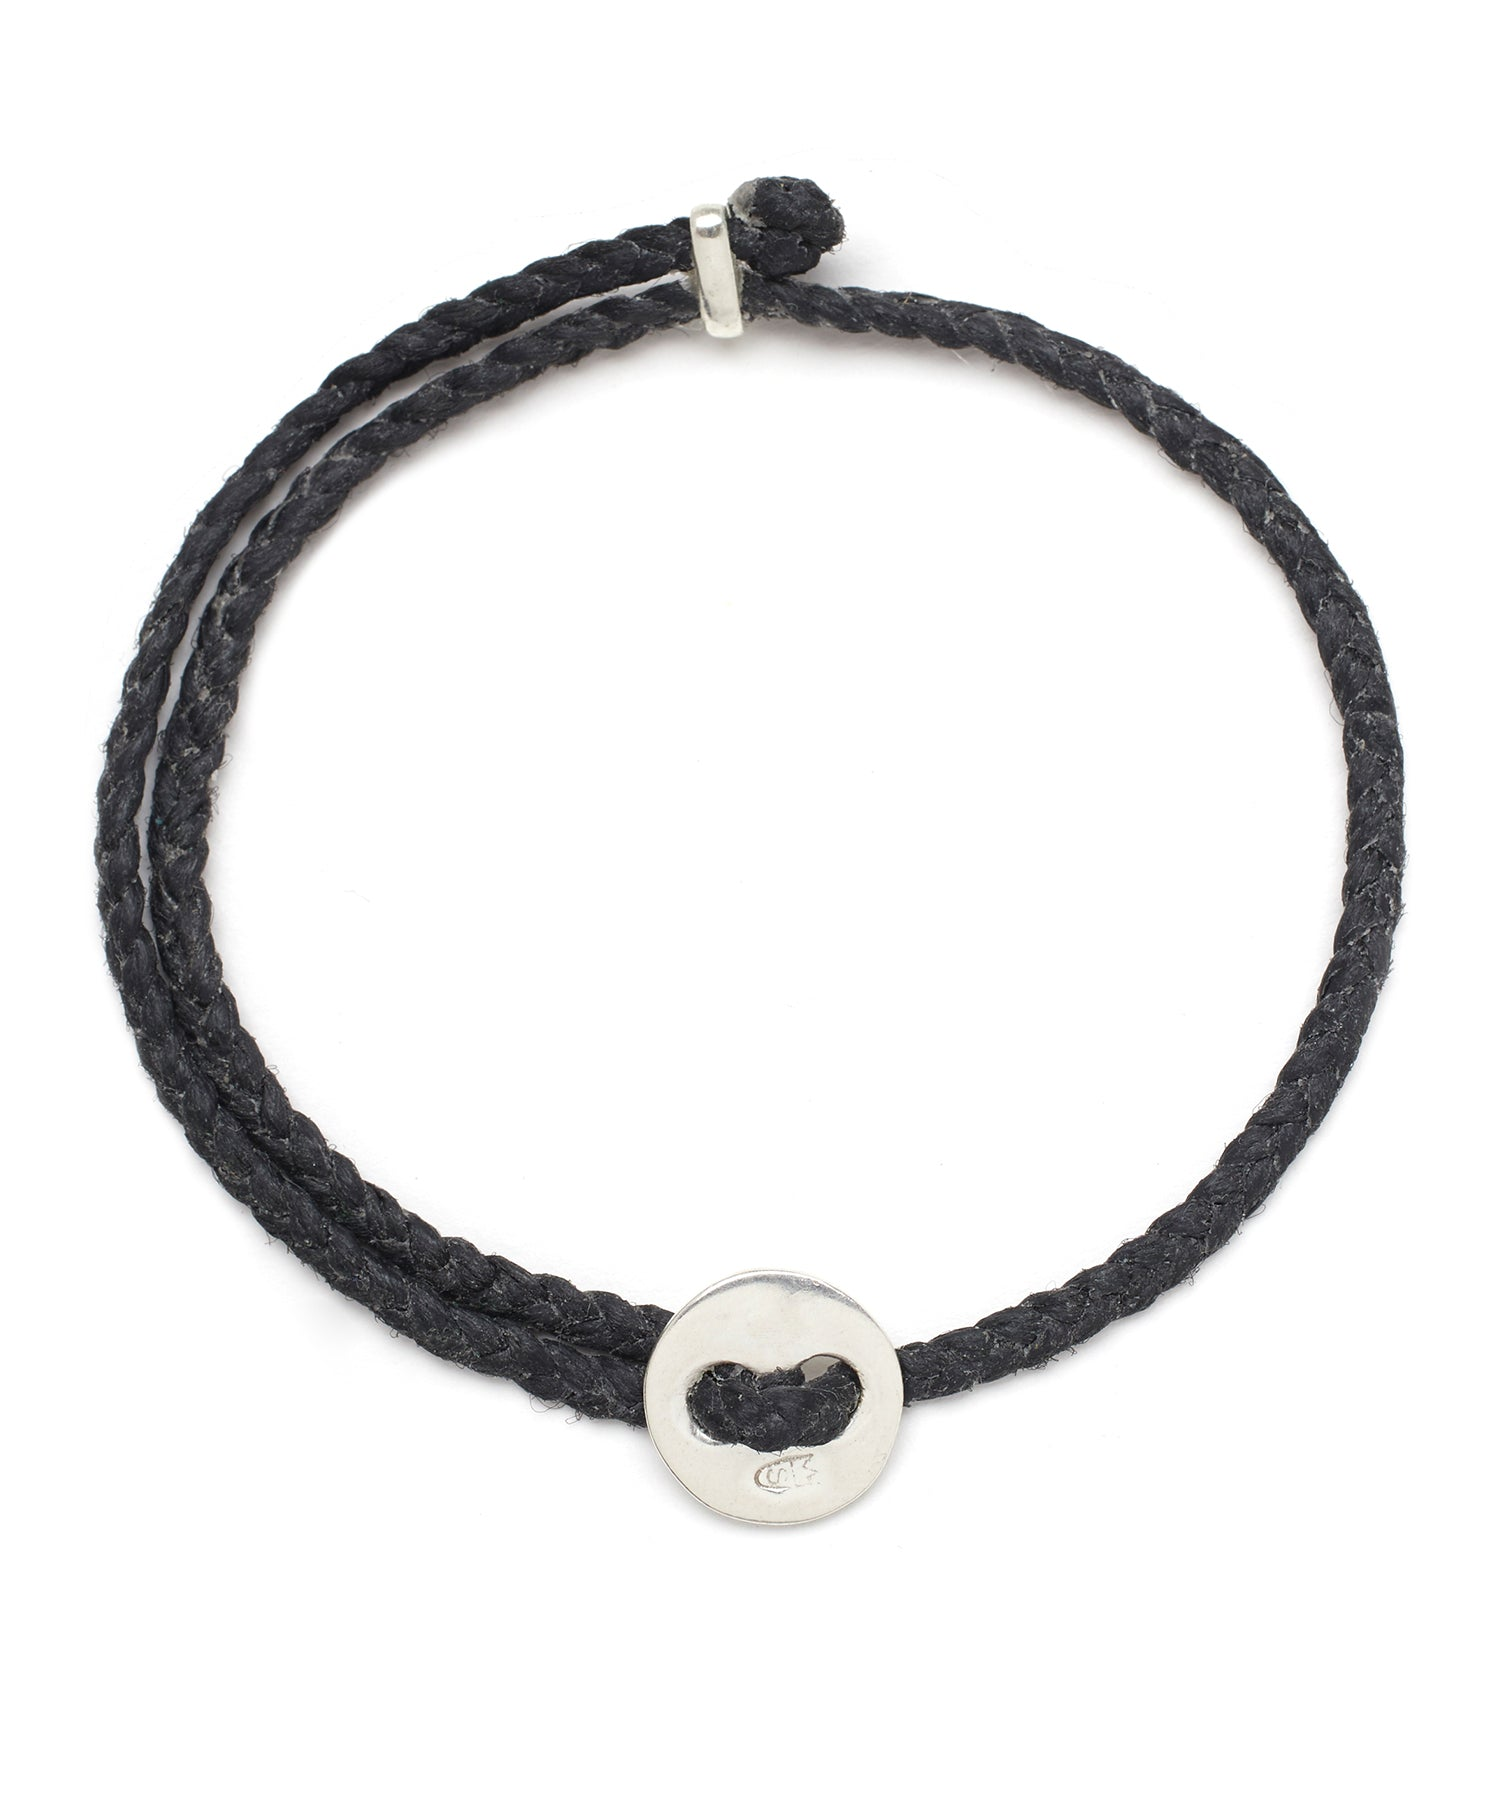 Scosha Signature 4MM Bracelet in Silver and Black